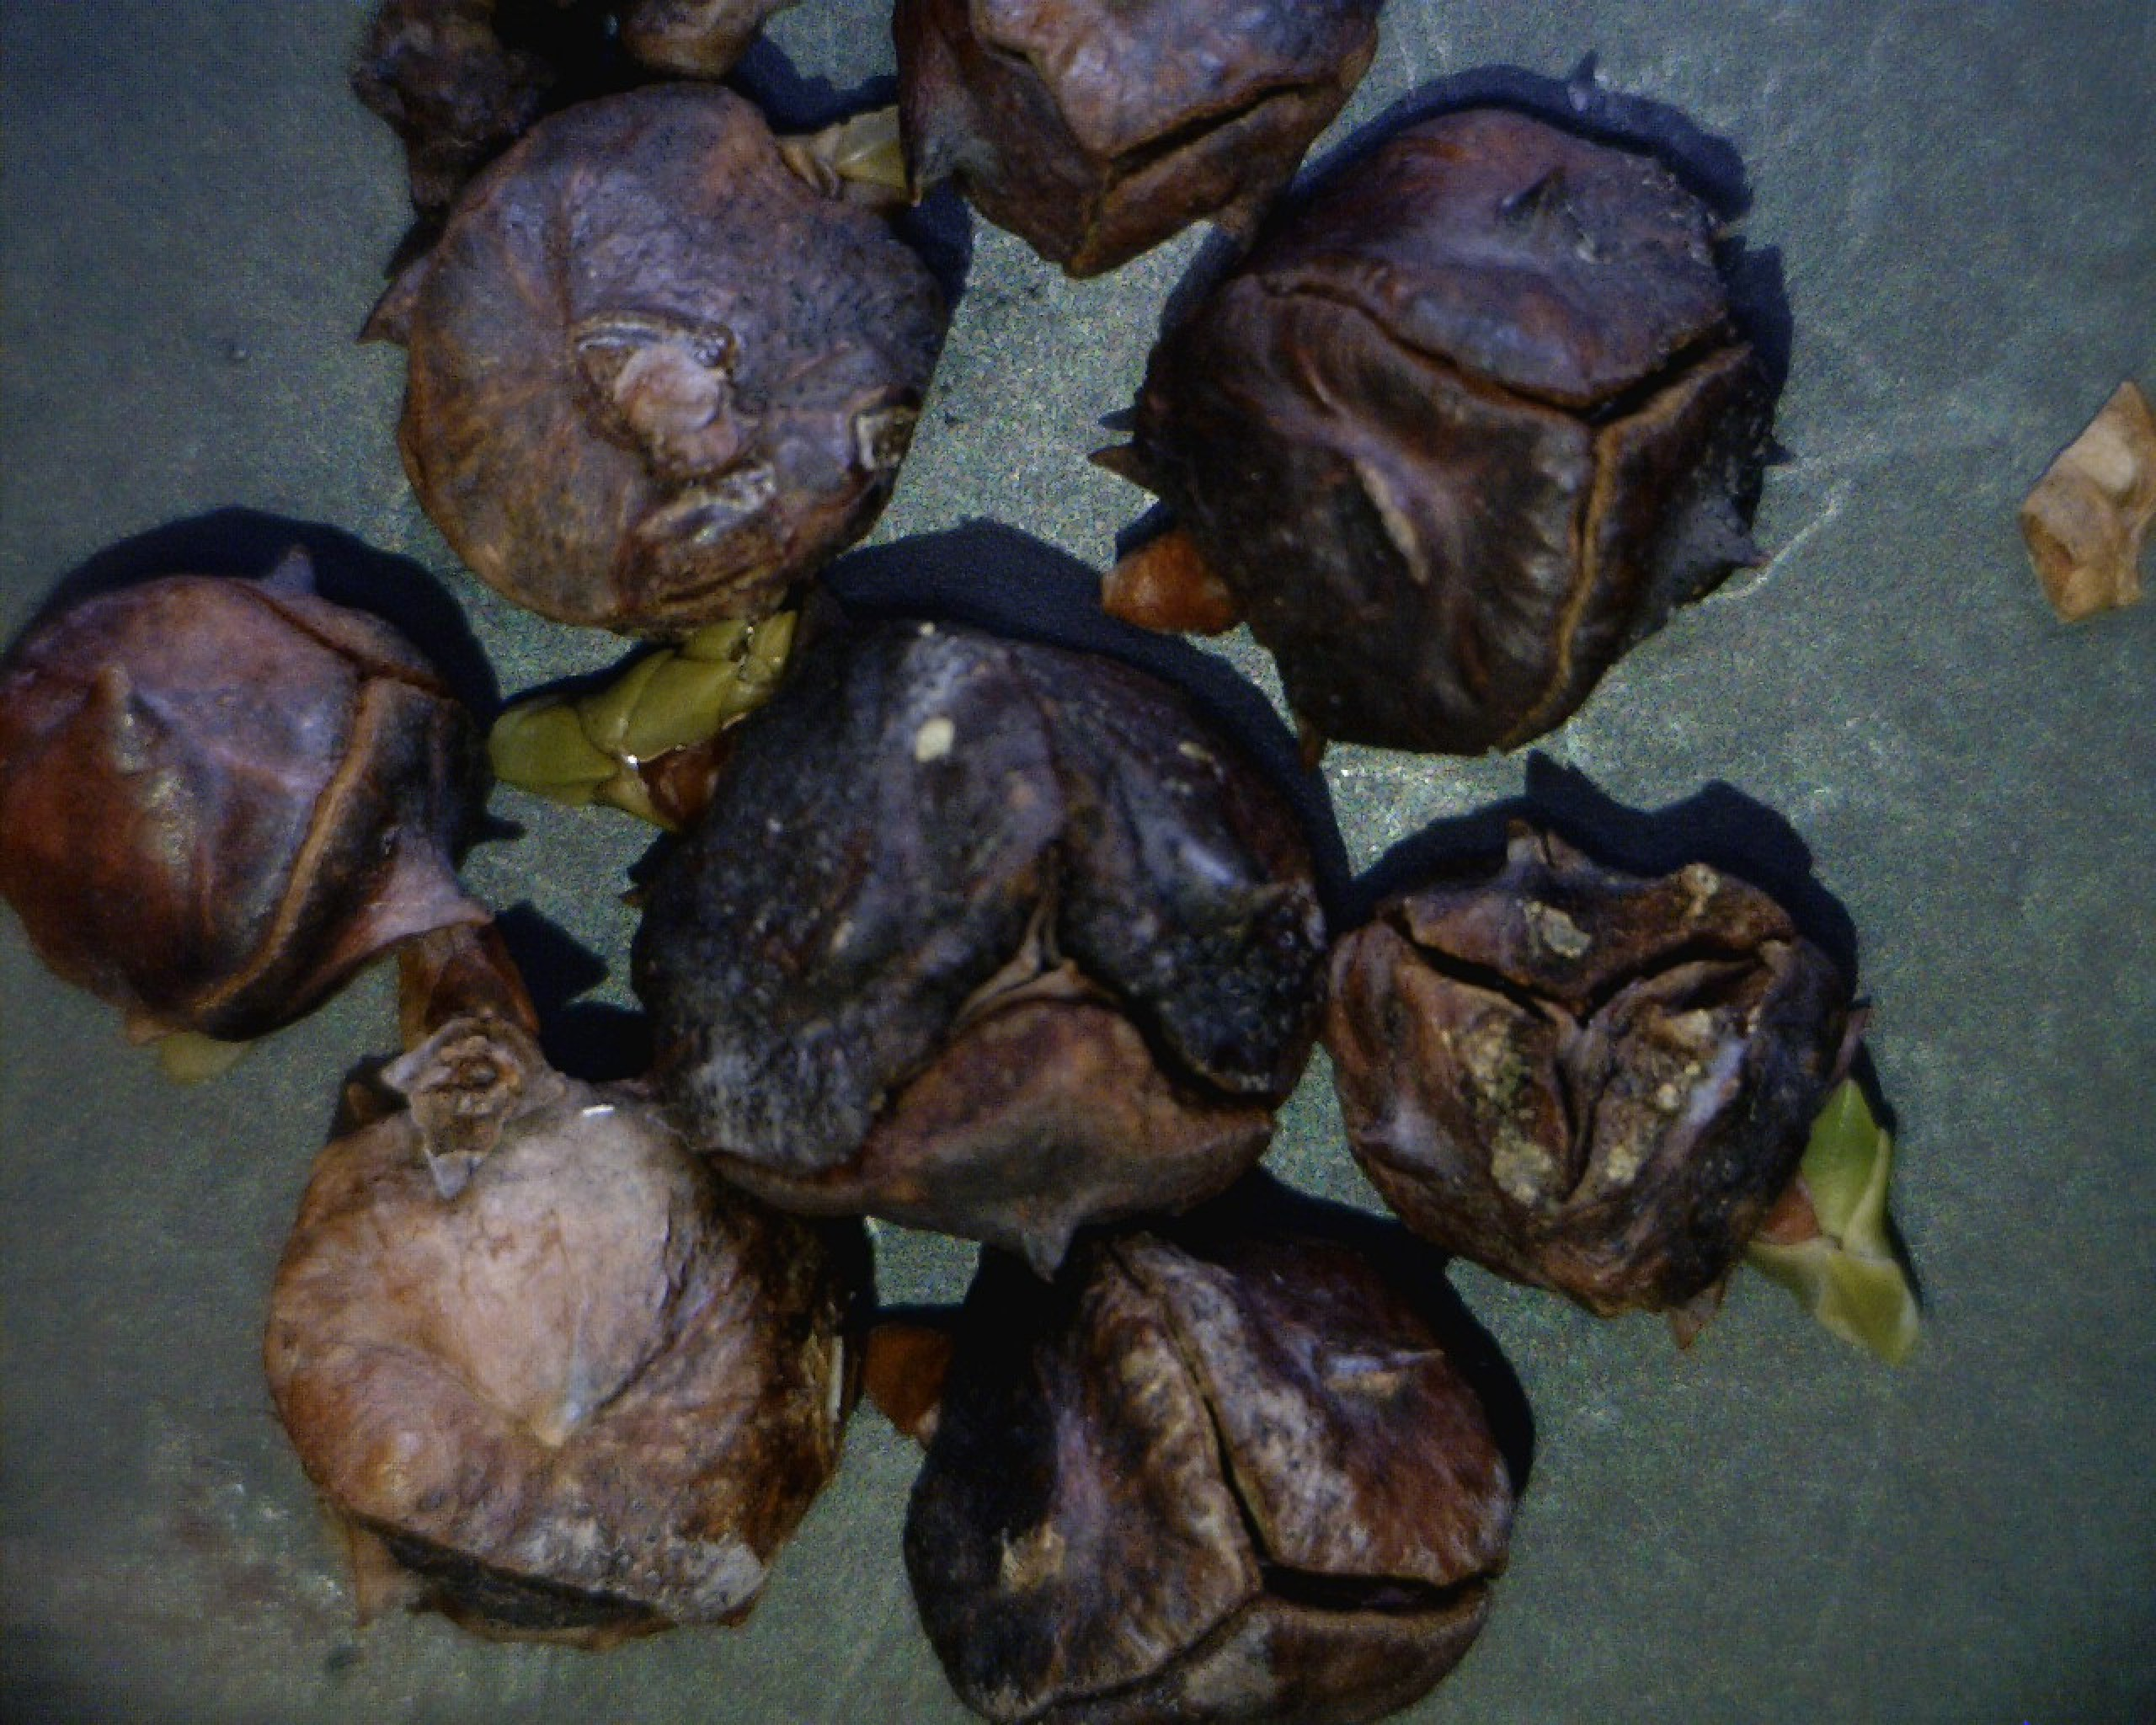 Cones infected with Kabatina thujae, which typically causes shoot blight.